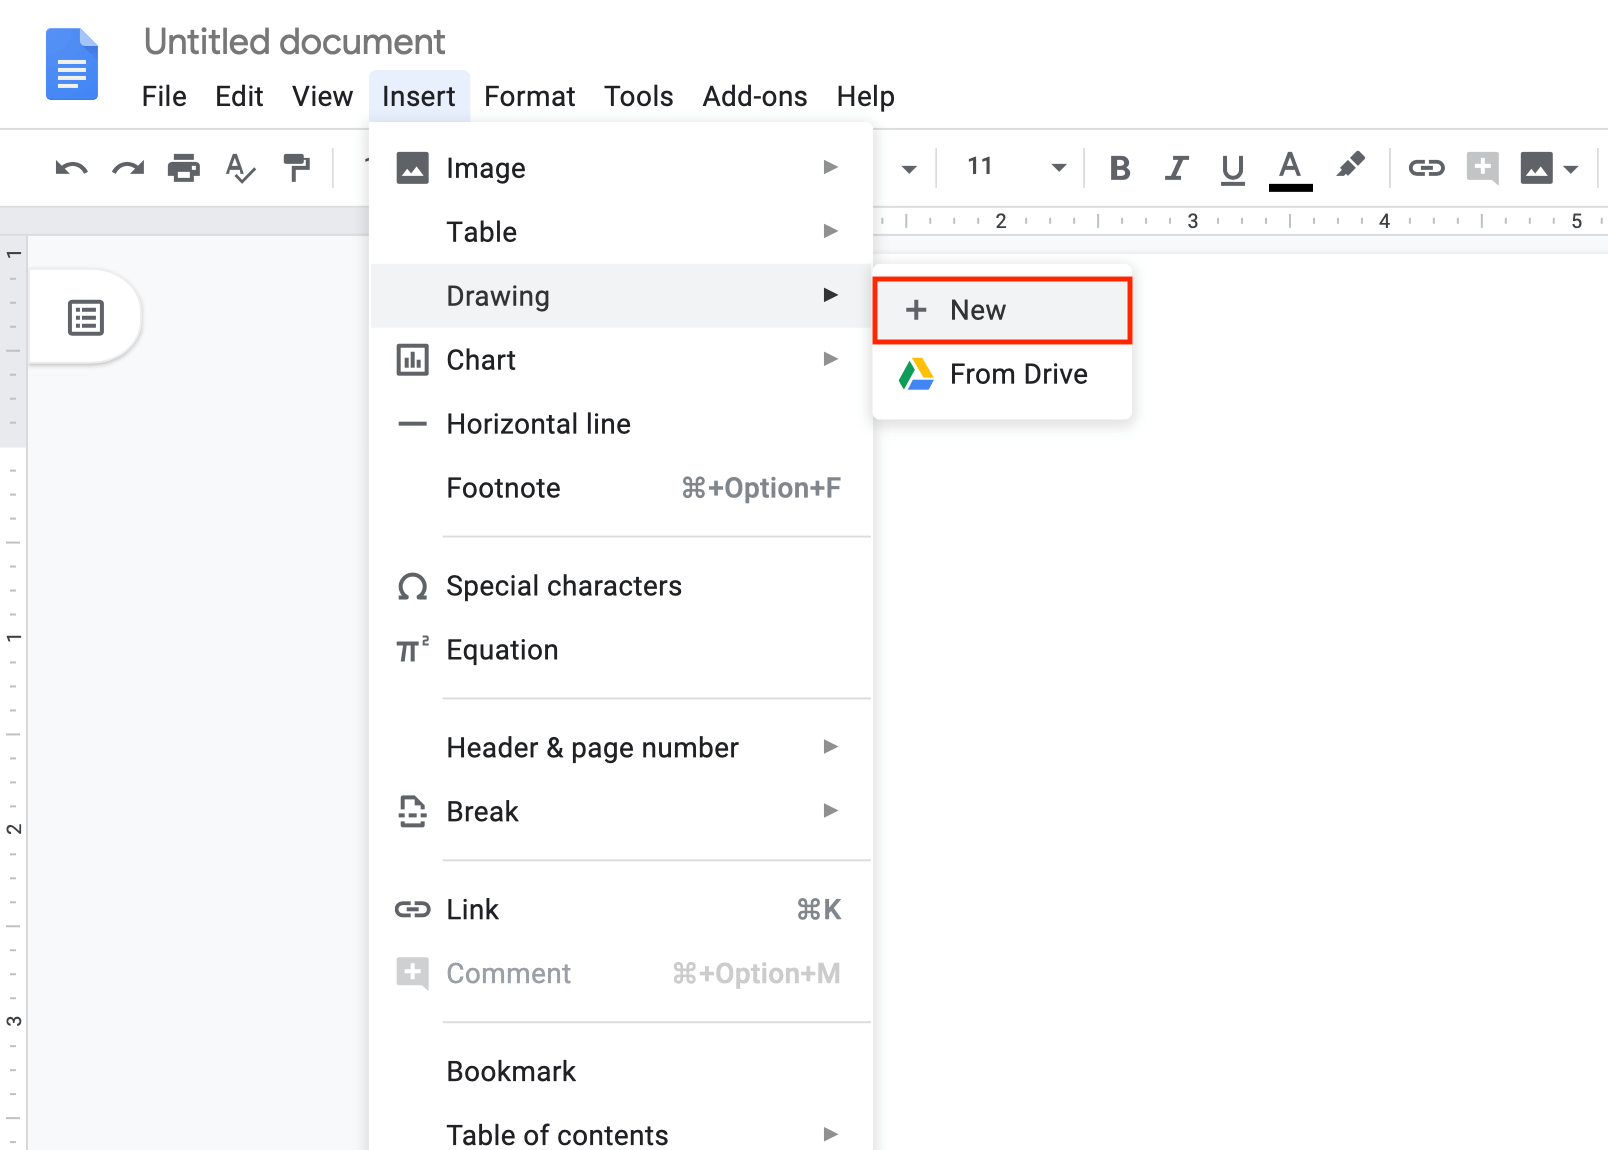 How To Put An Image Behind Text In Google Docs